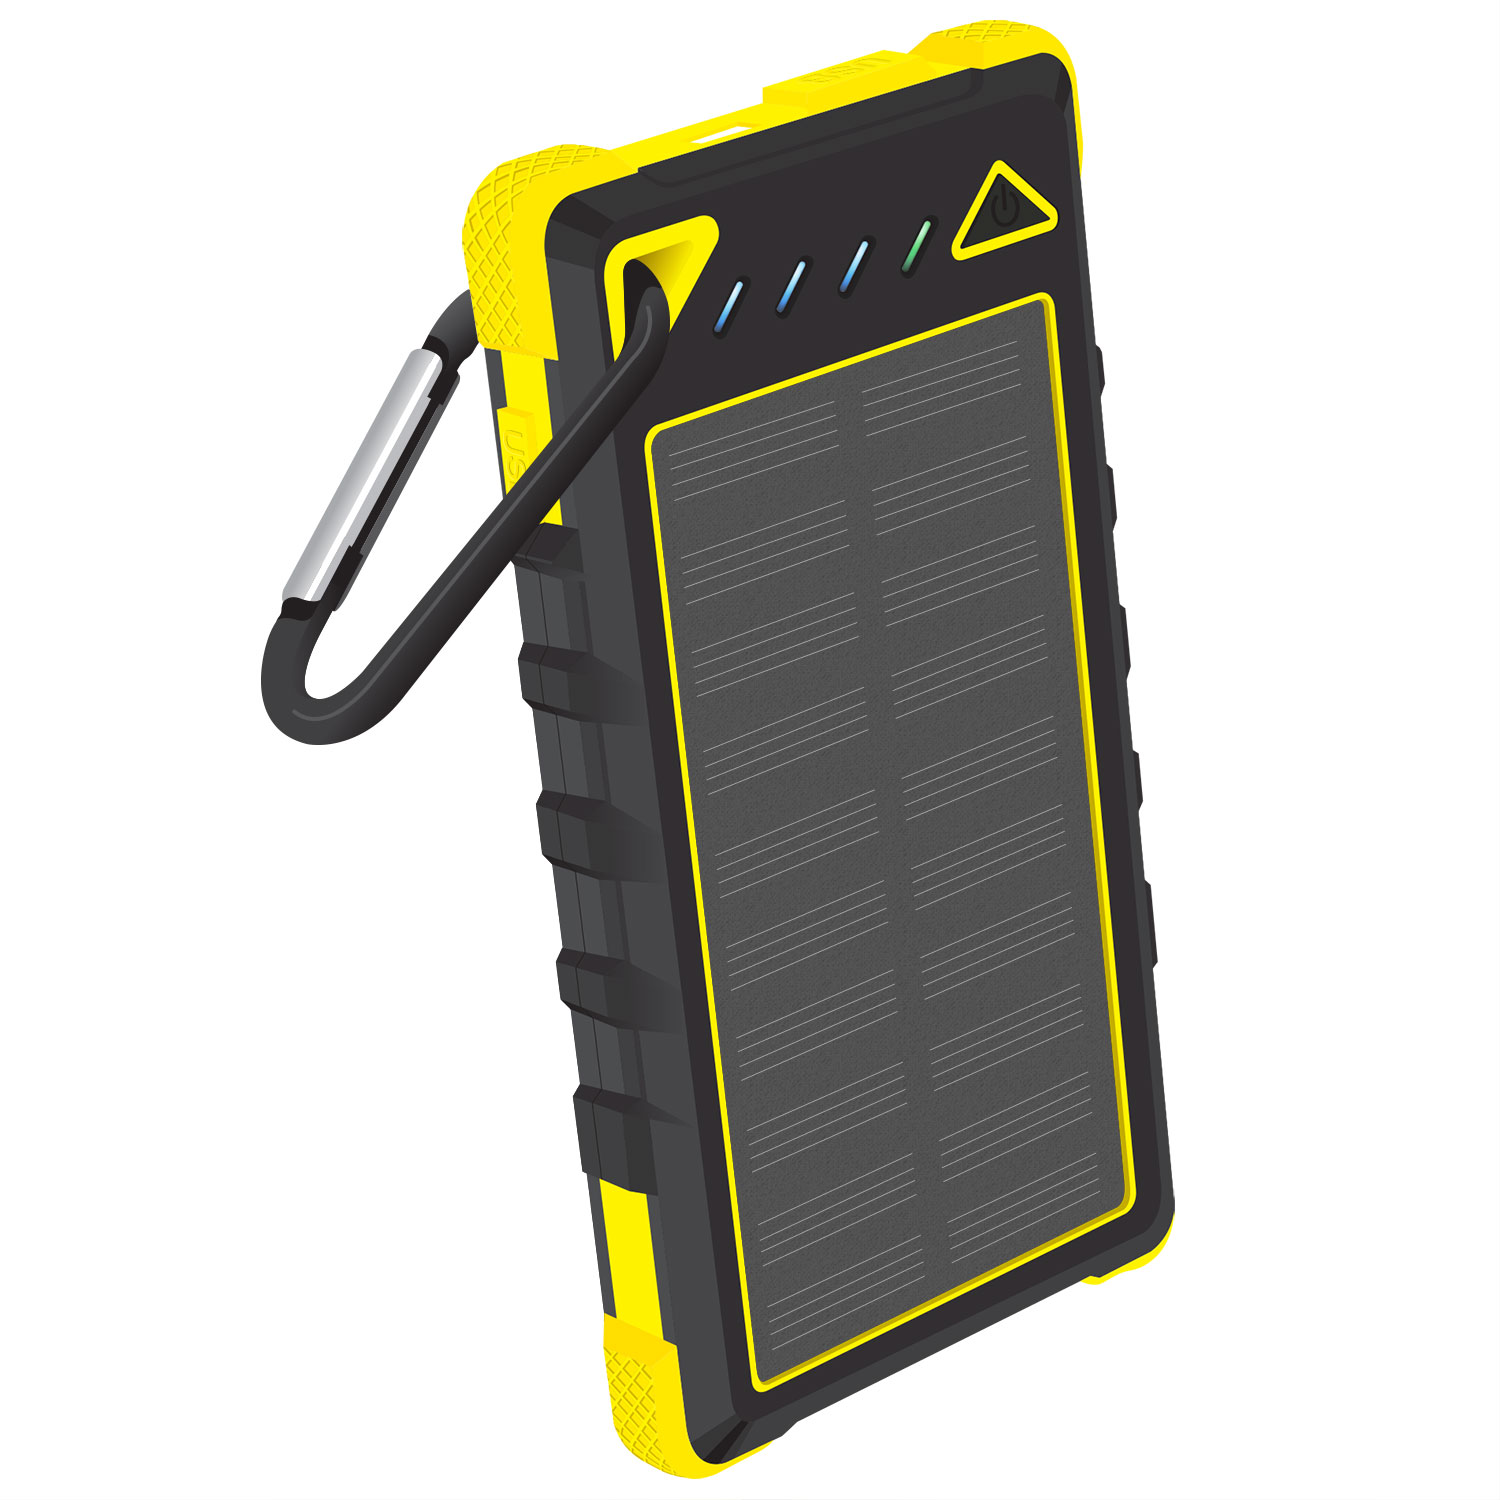 LG K7 Solar Powered Portable PowerBank Yellow